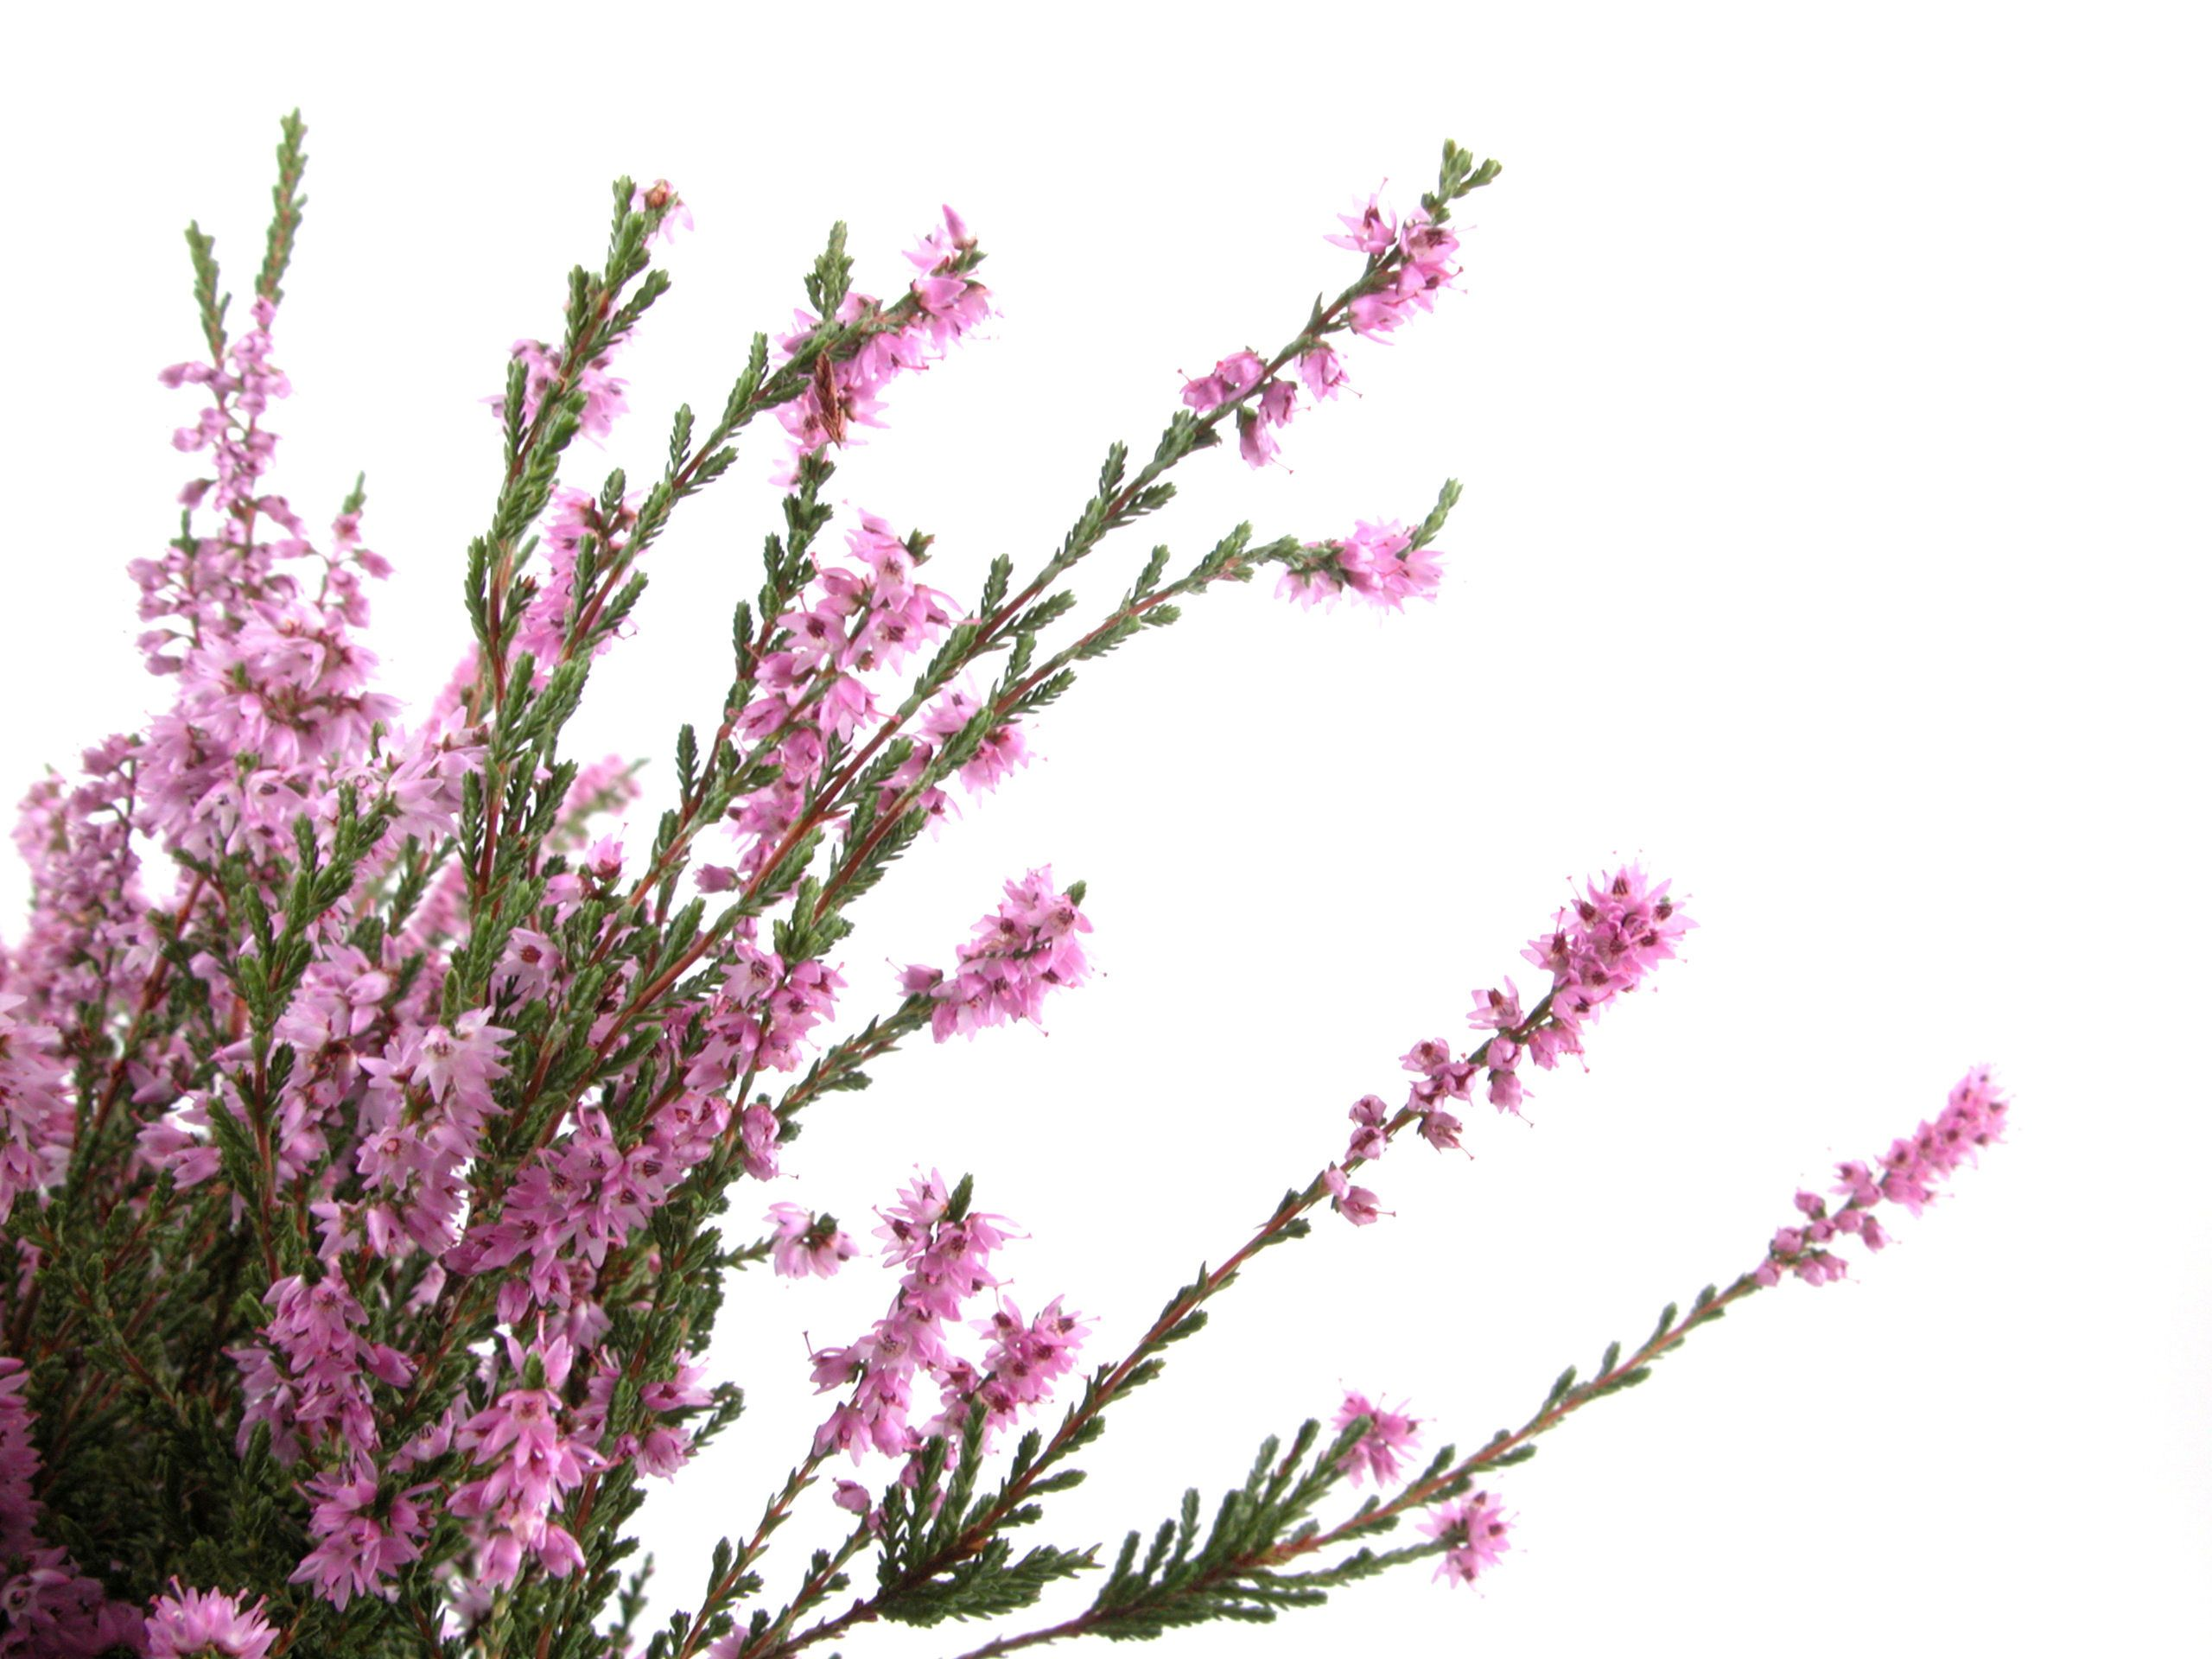 Heather Flower Wallpaper 2560x1920 30597 Heather Flower Beautiful Flowers Pictures Most Beautiful Flowers